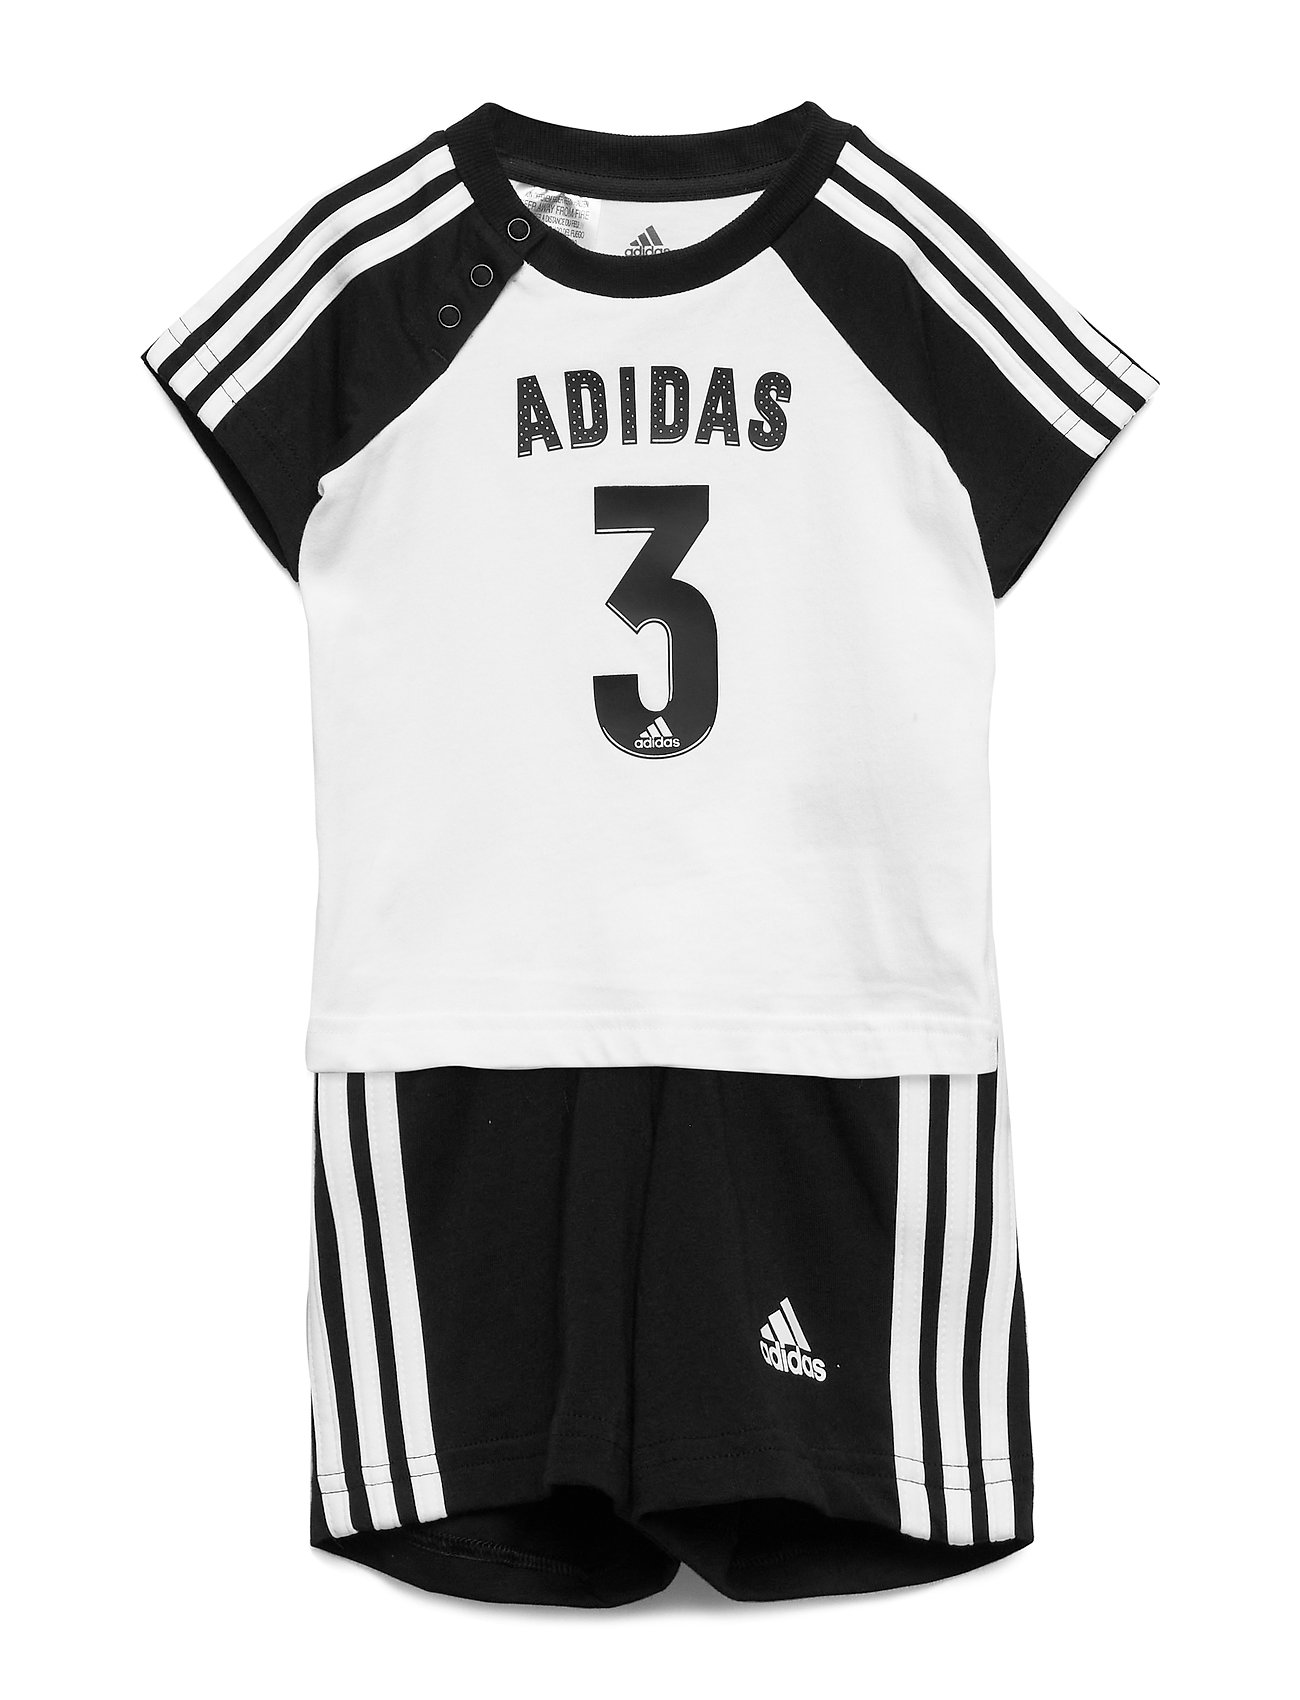 adidas Performance I SPORT SUM SET - WHITE/BLACK